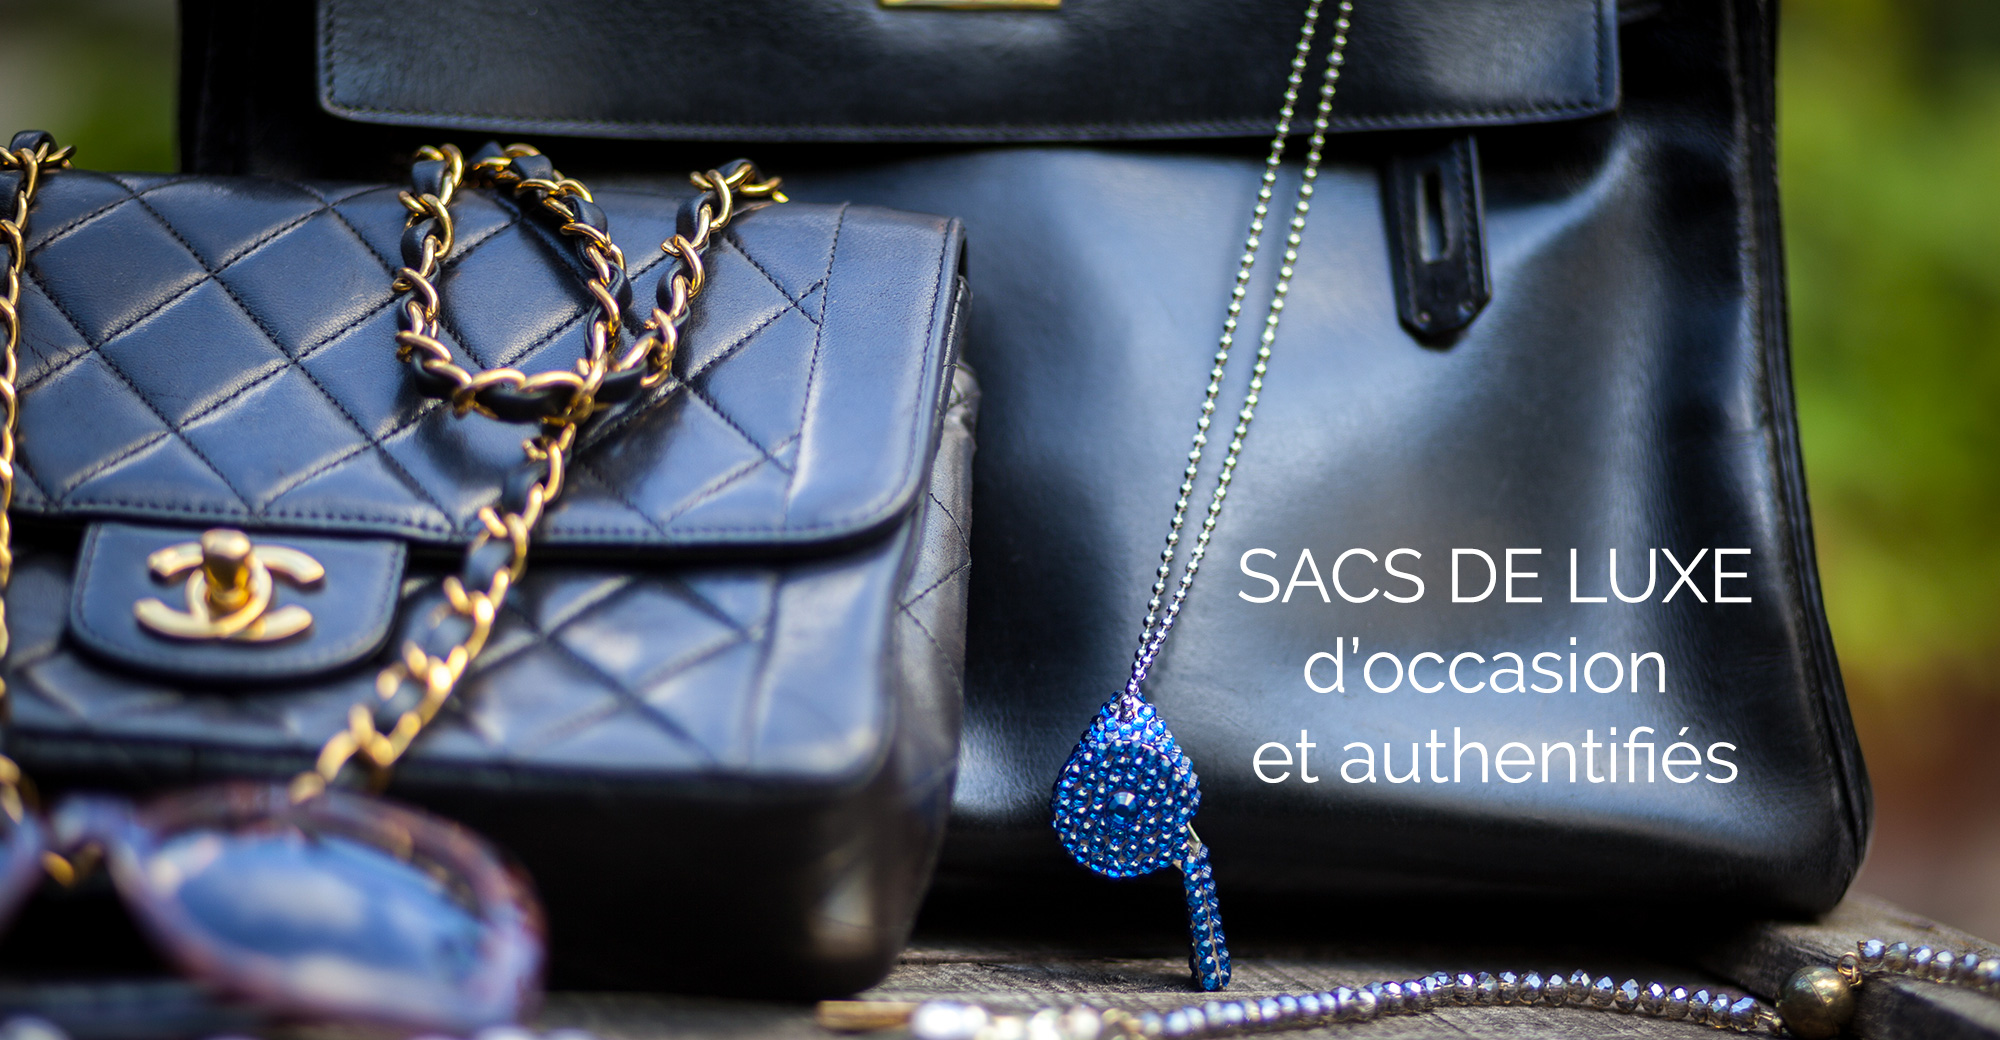 Sacs Luxe occasion Hermes Chanel Vintage